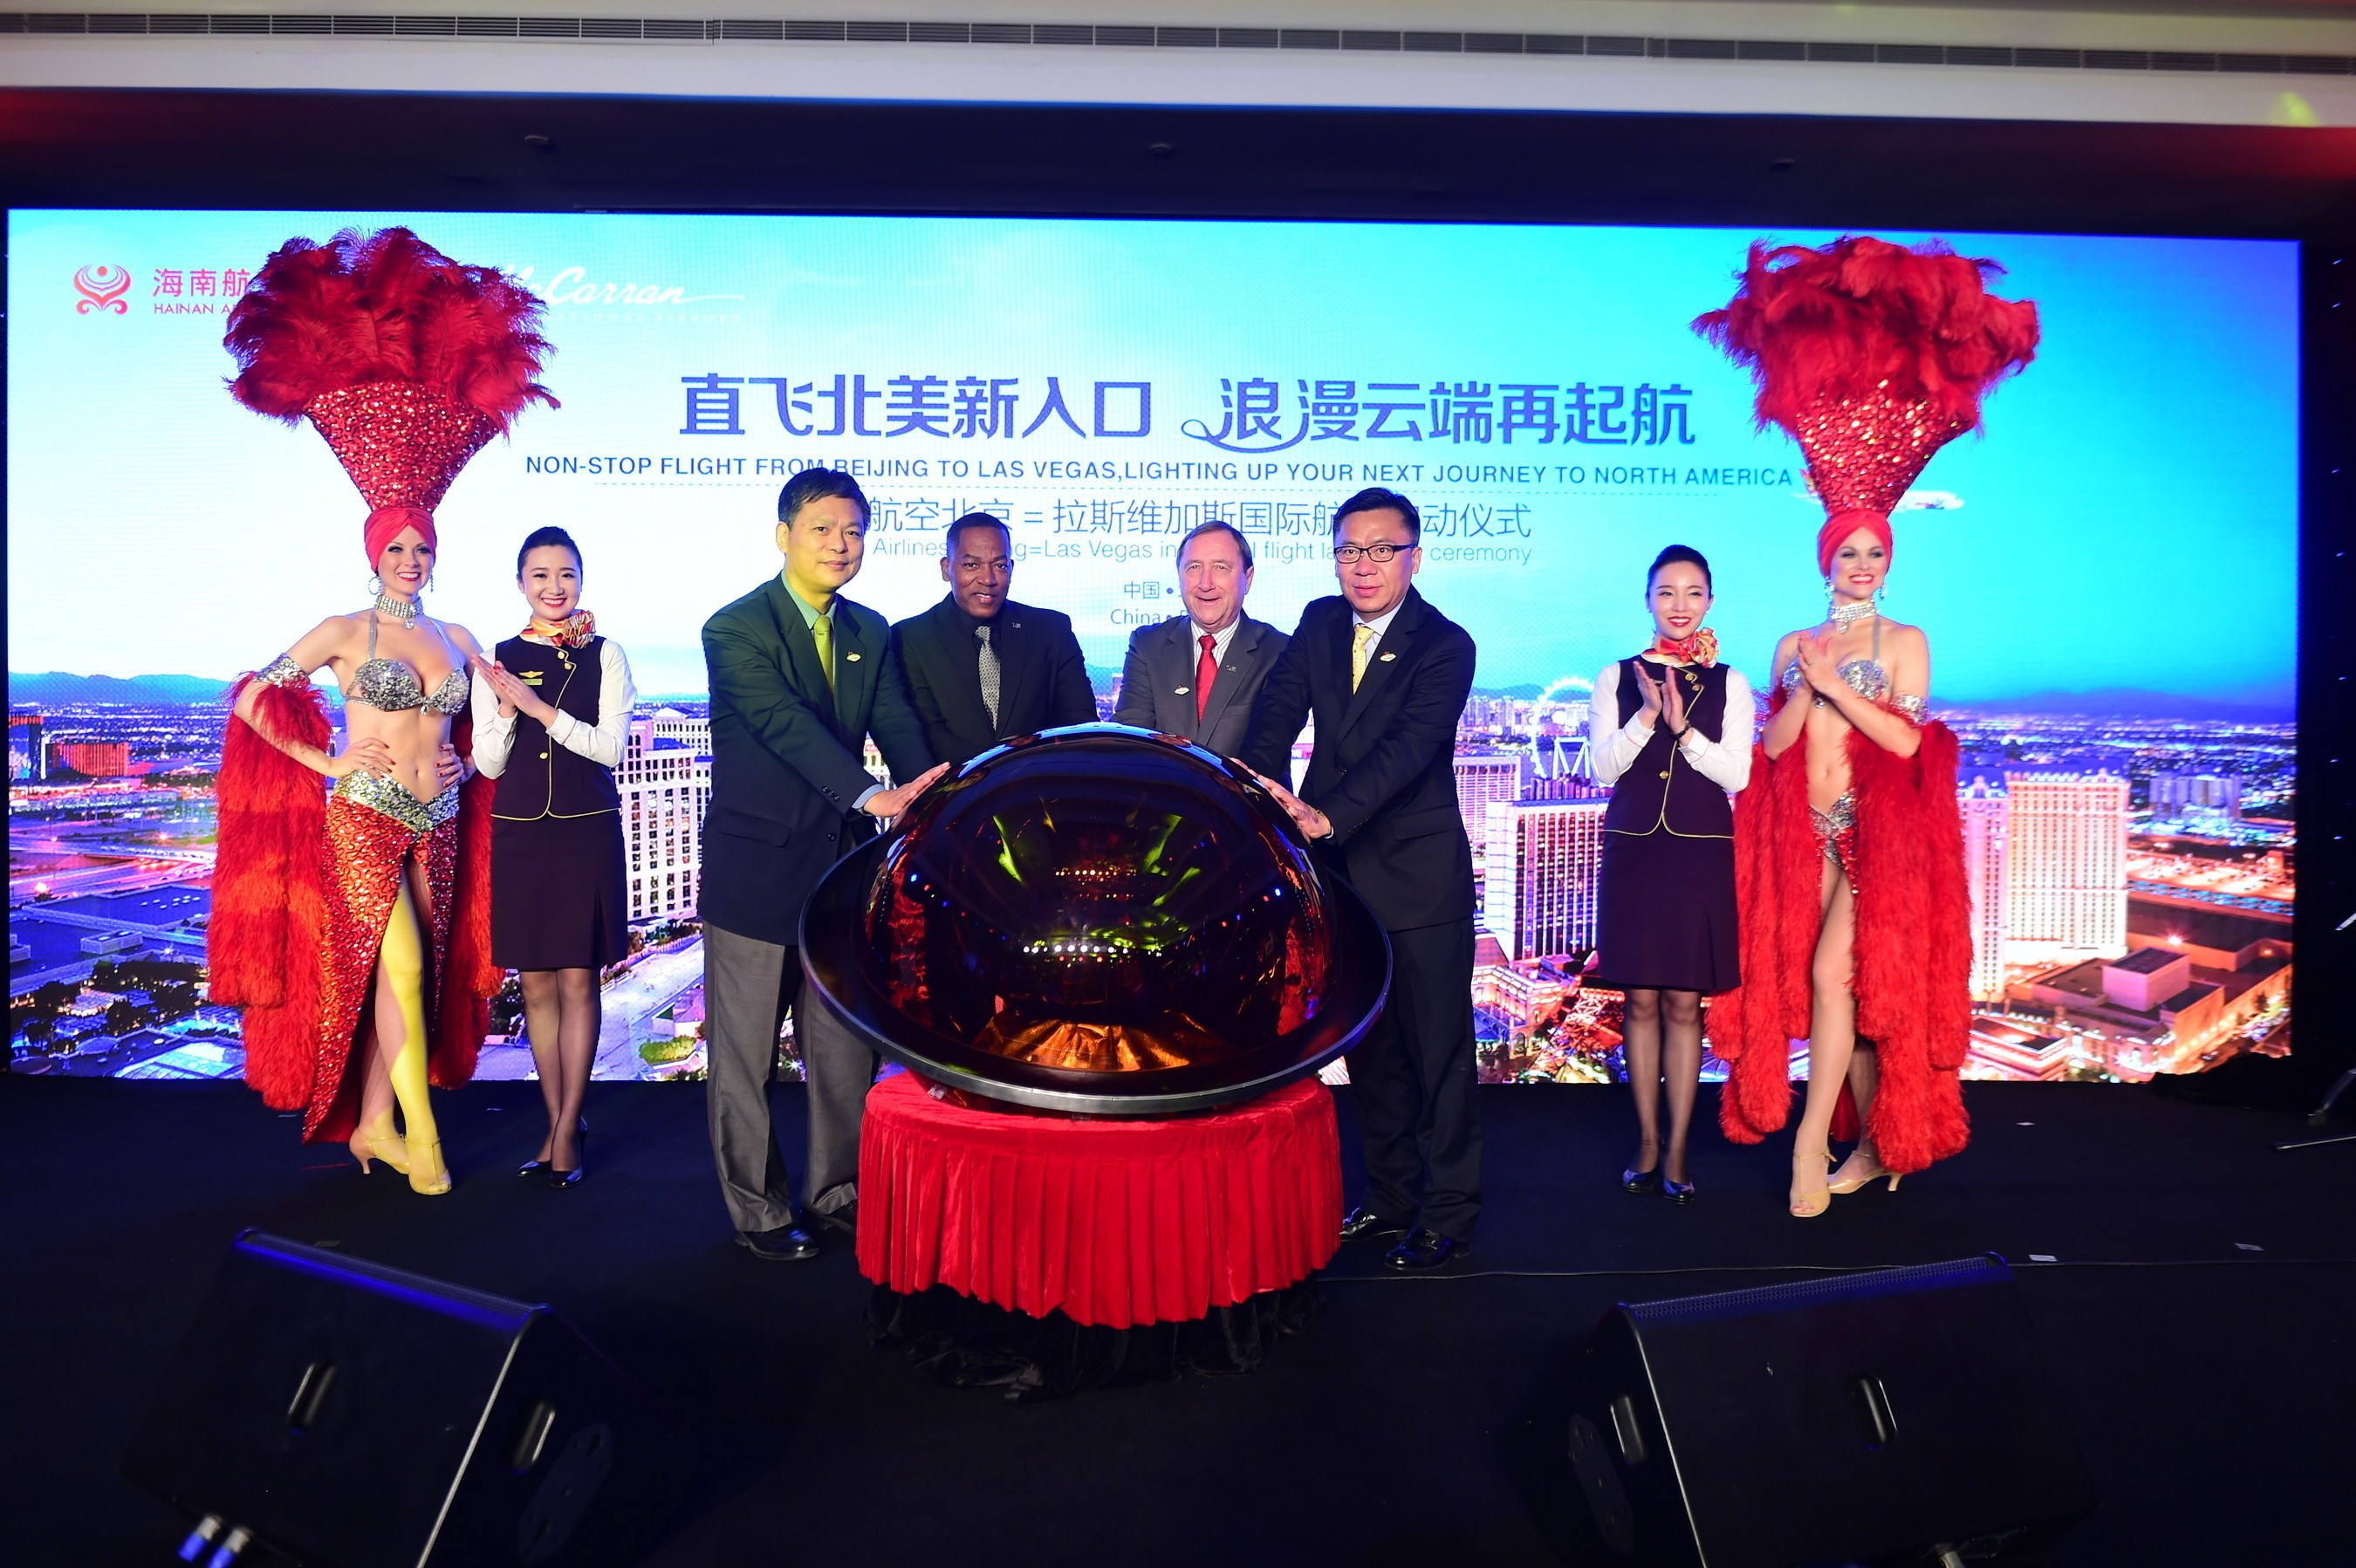 Hainan Airlines vice president of marketing Hou Wei, Clark County Commissioner Lawrence Weekly, Las Vegas Convention and Visitors Authority president Rossi Ralenkotter; and World Tourism Cities Federation deputy secretary-general and Beijing Municipal Commission of Tourism Development delegation member Li Baochun jointly announced the start of the inauguration ceremony